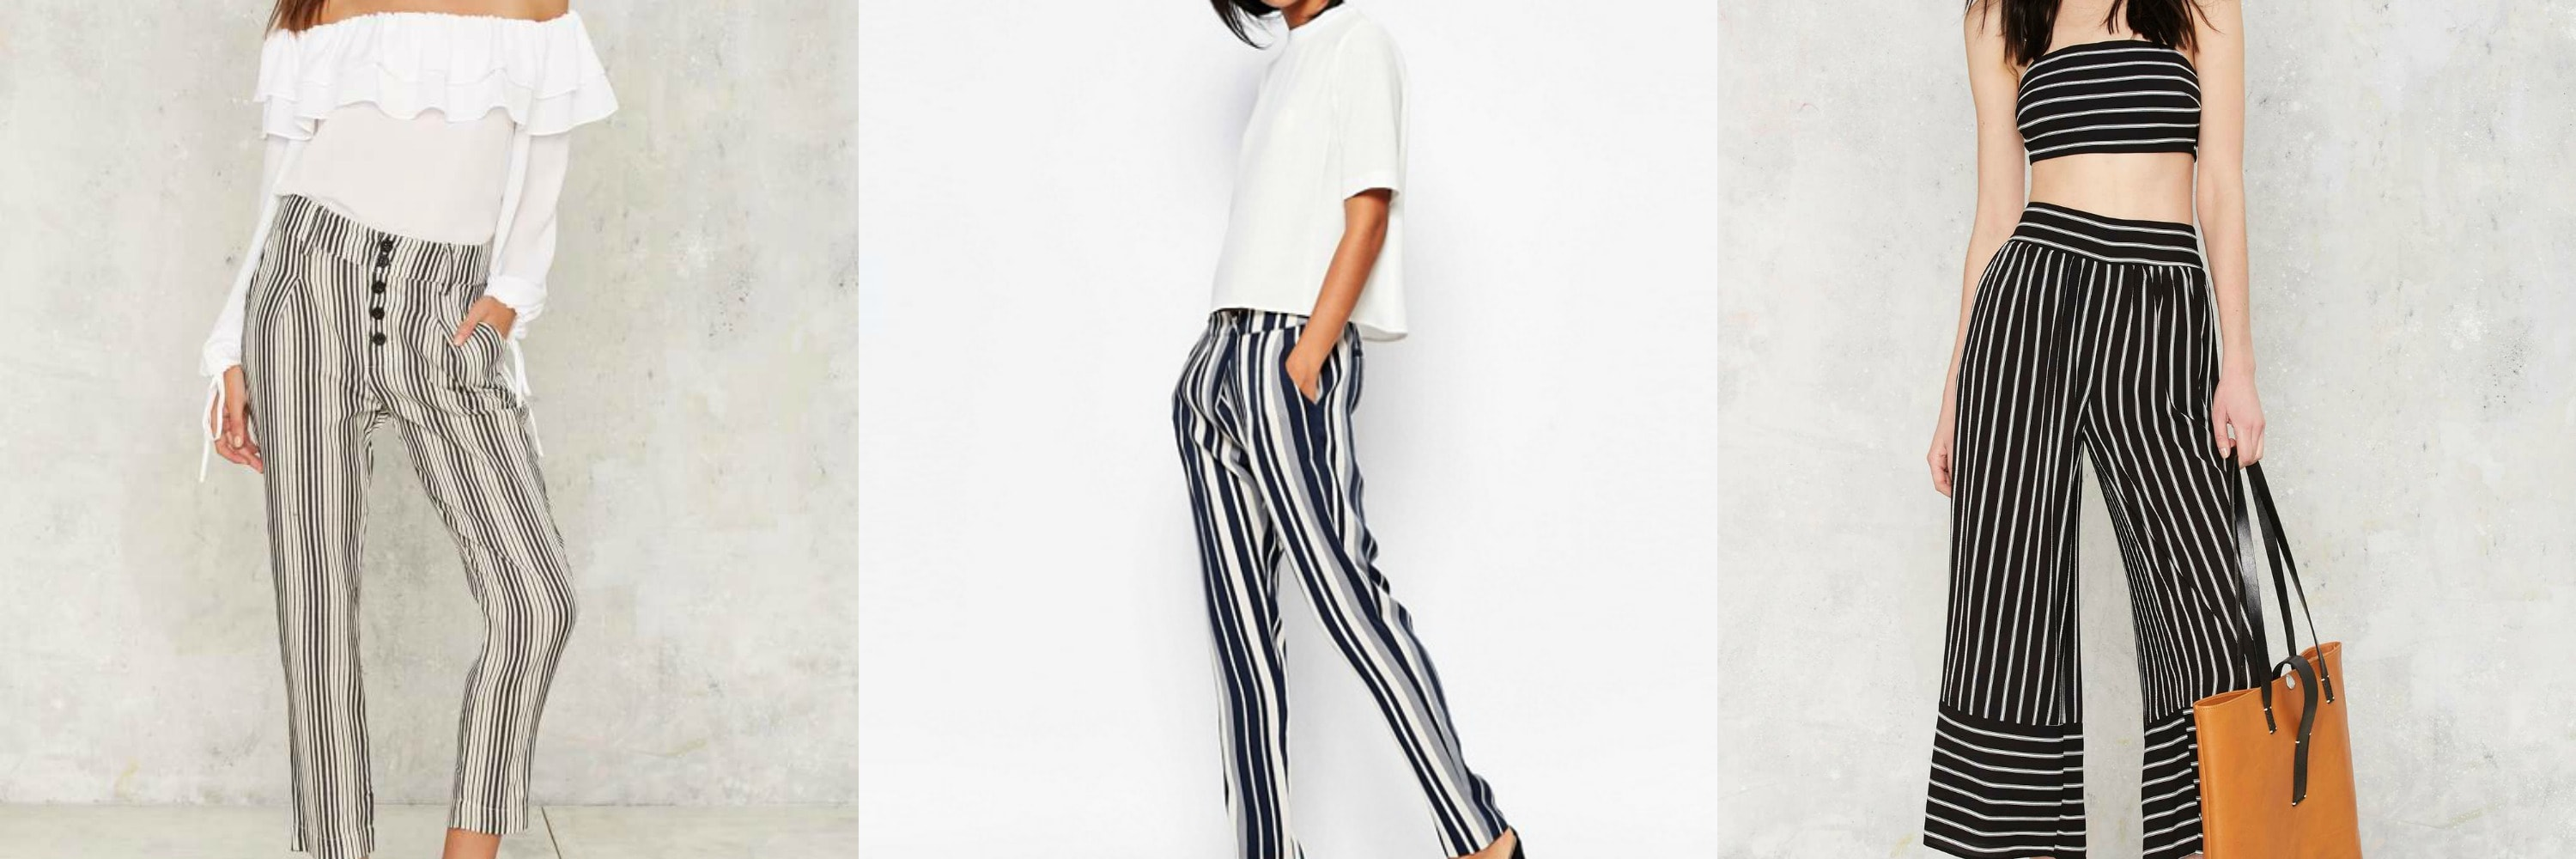 striped pants collage